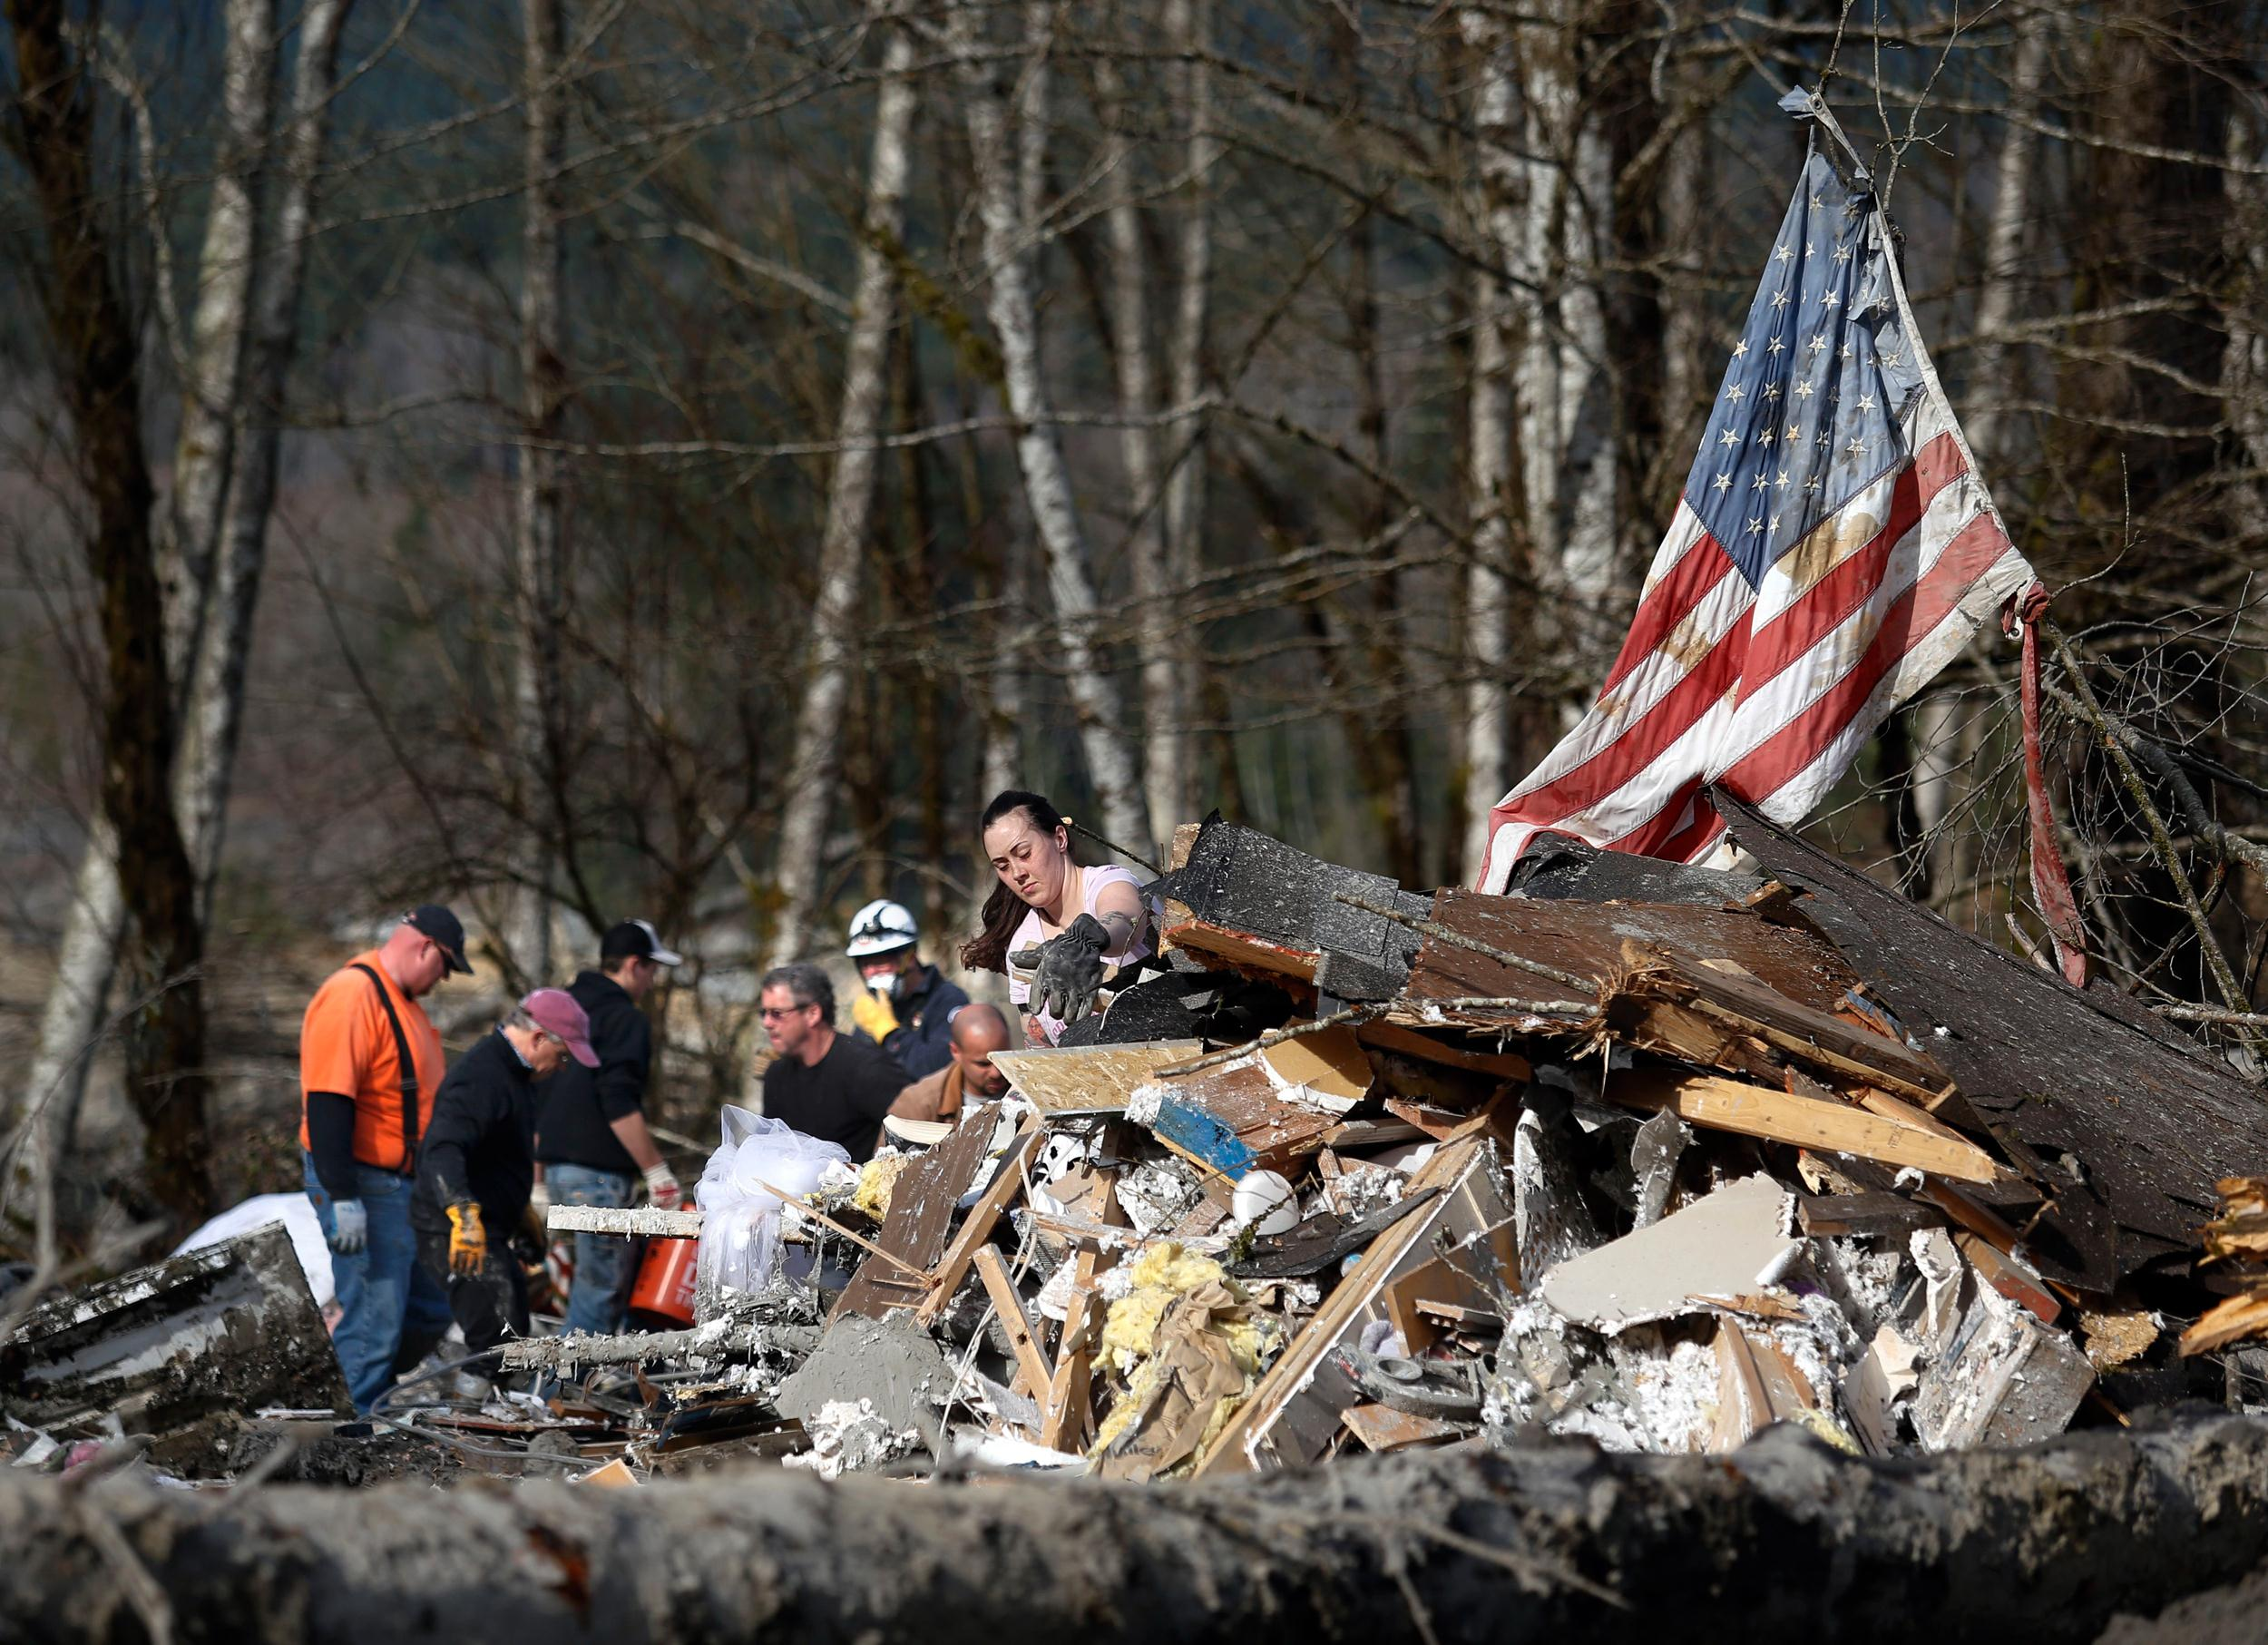 Image: Aftermath of mudslide in Oso, Wash.